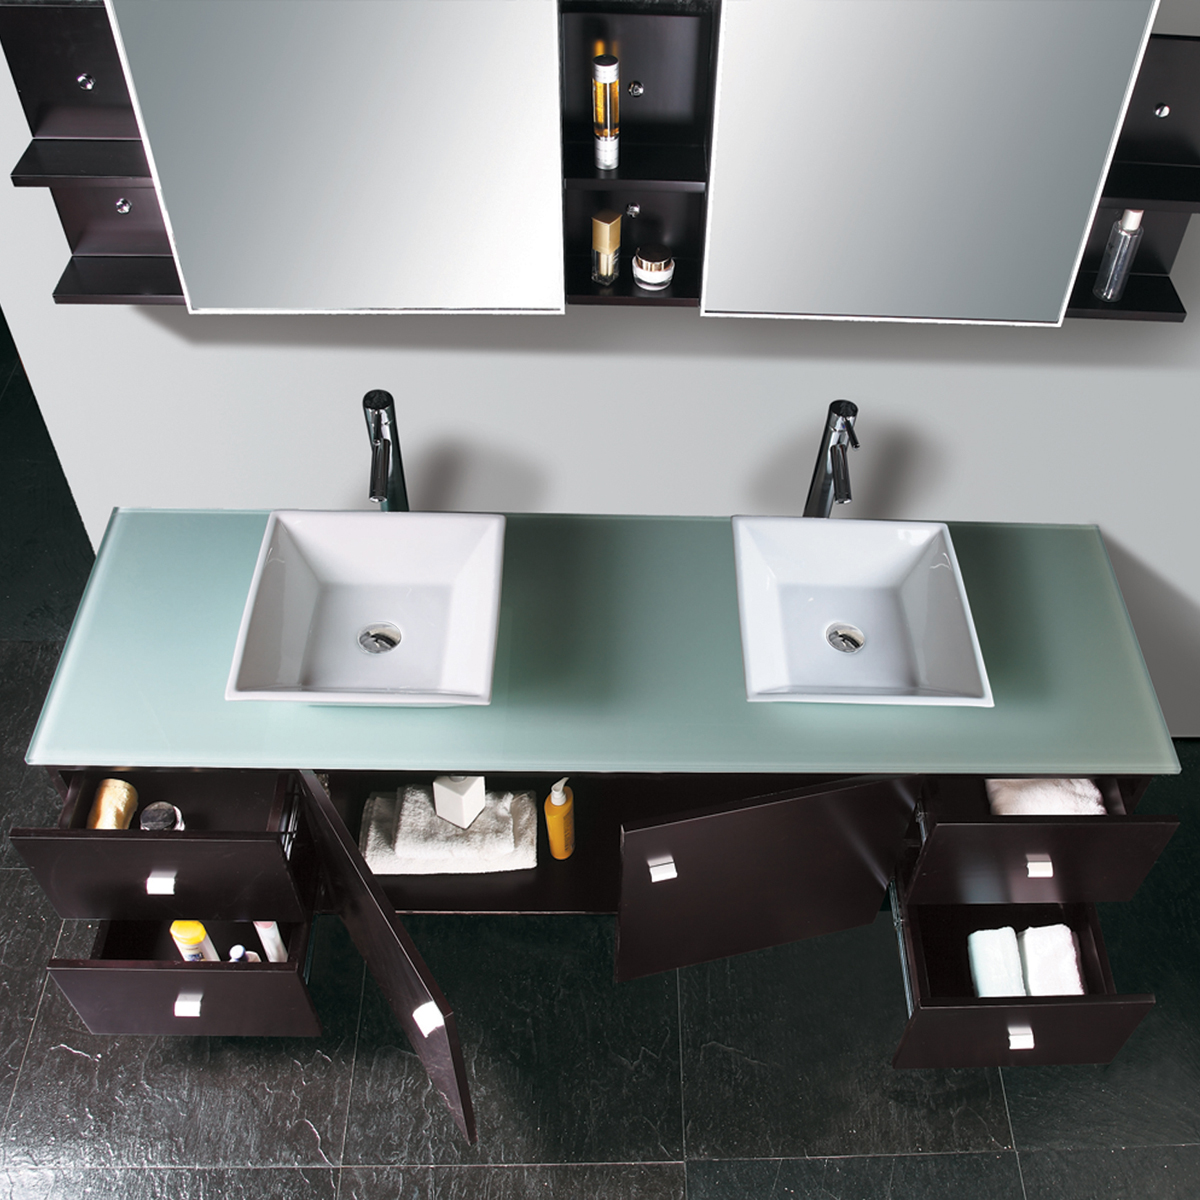 Includes 2 ceramic vessel sinks